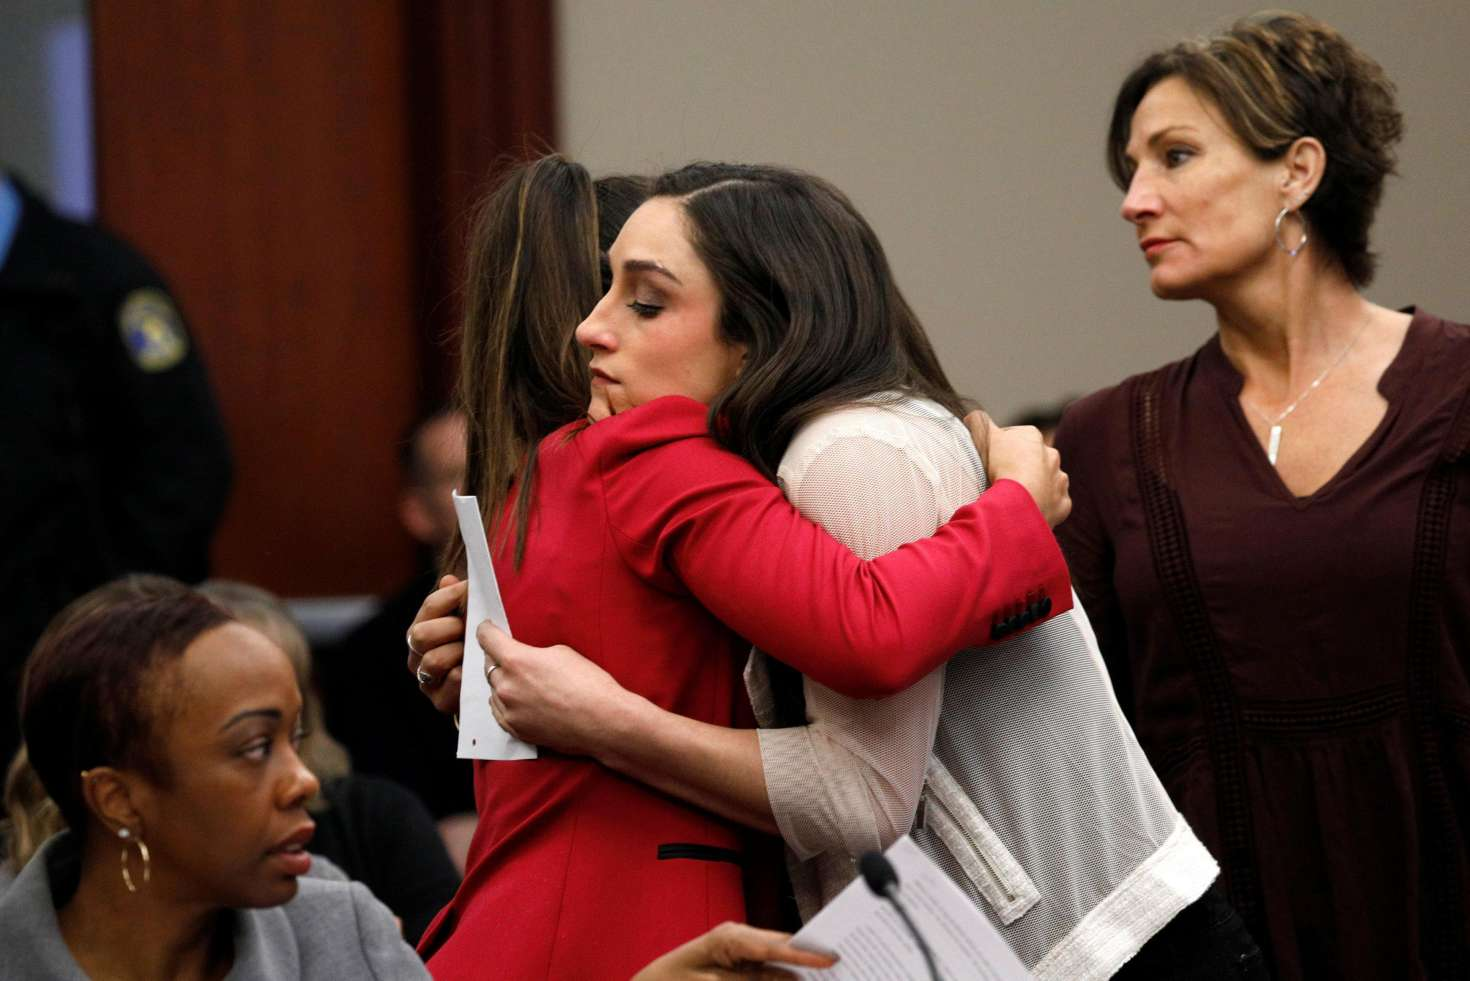 Nassar gets 40 to 125 more years in final sentence